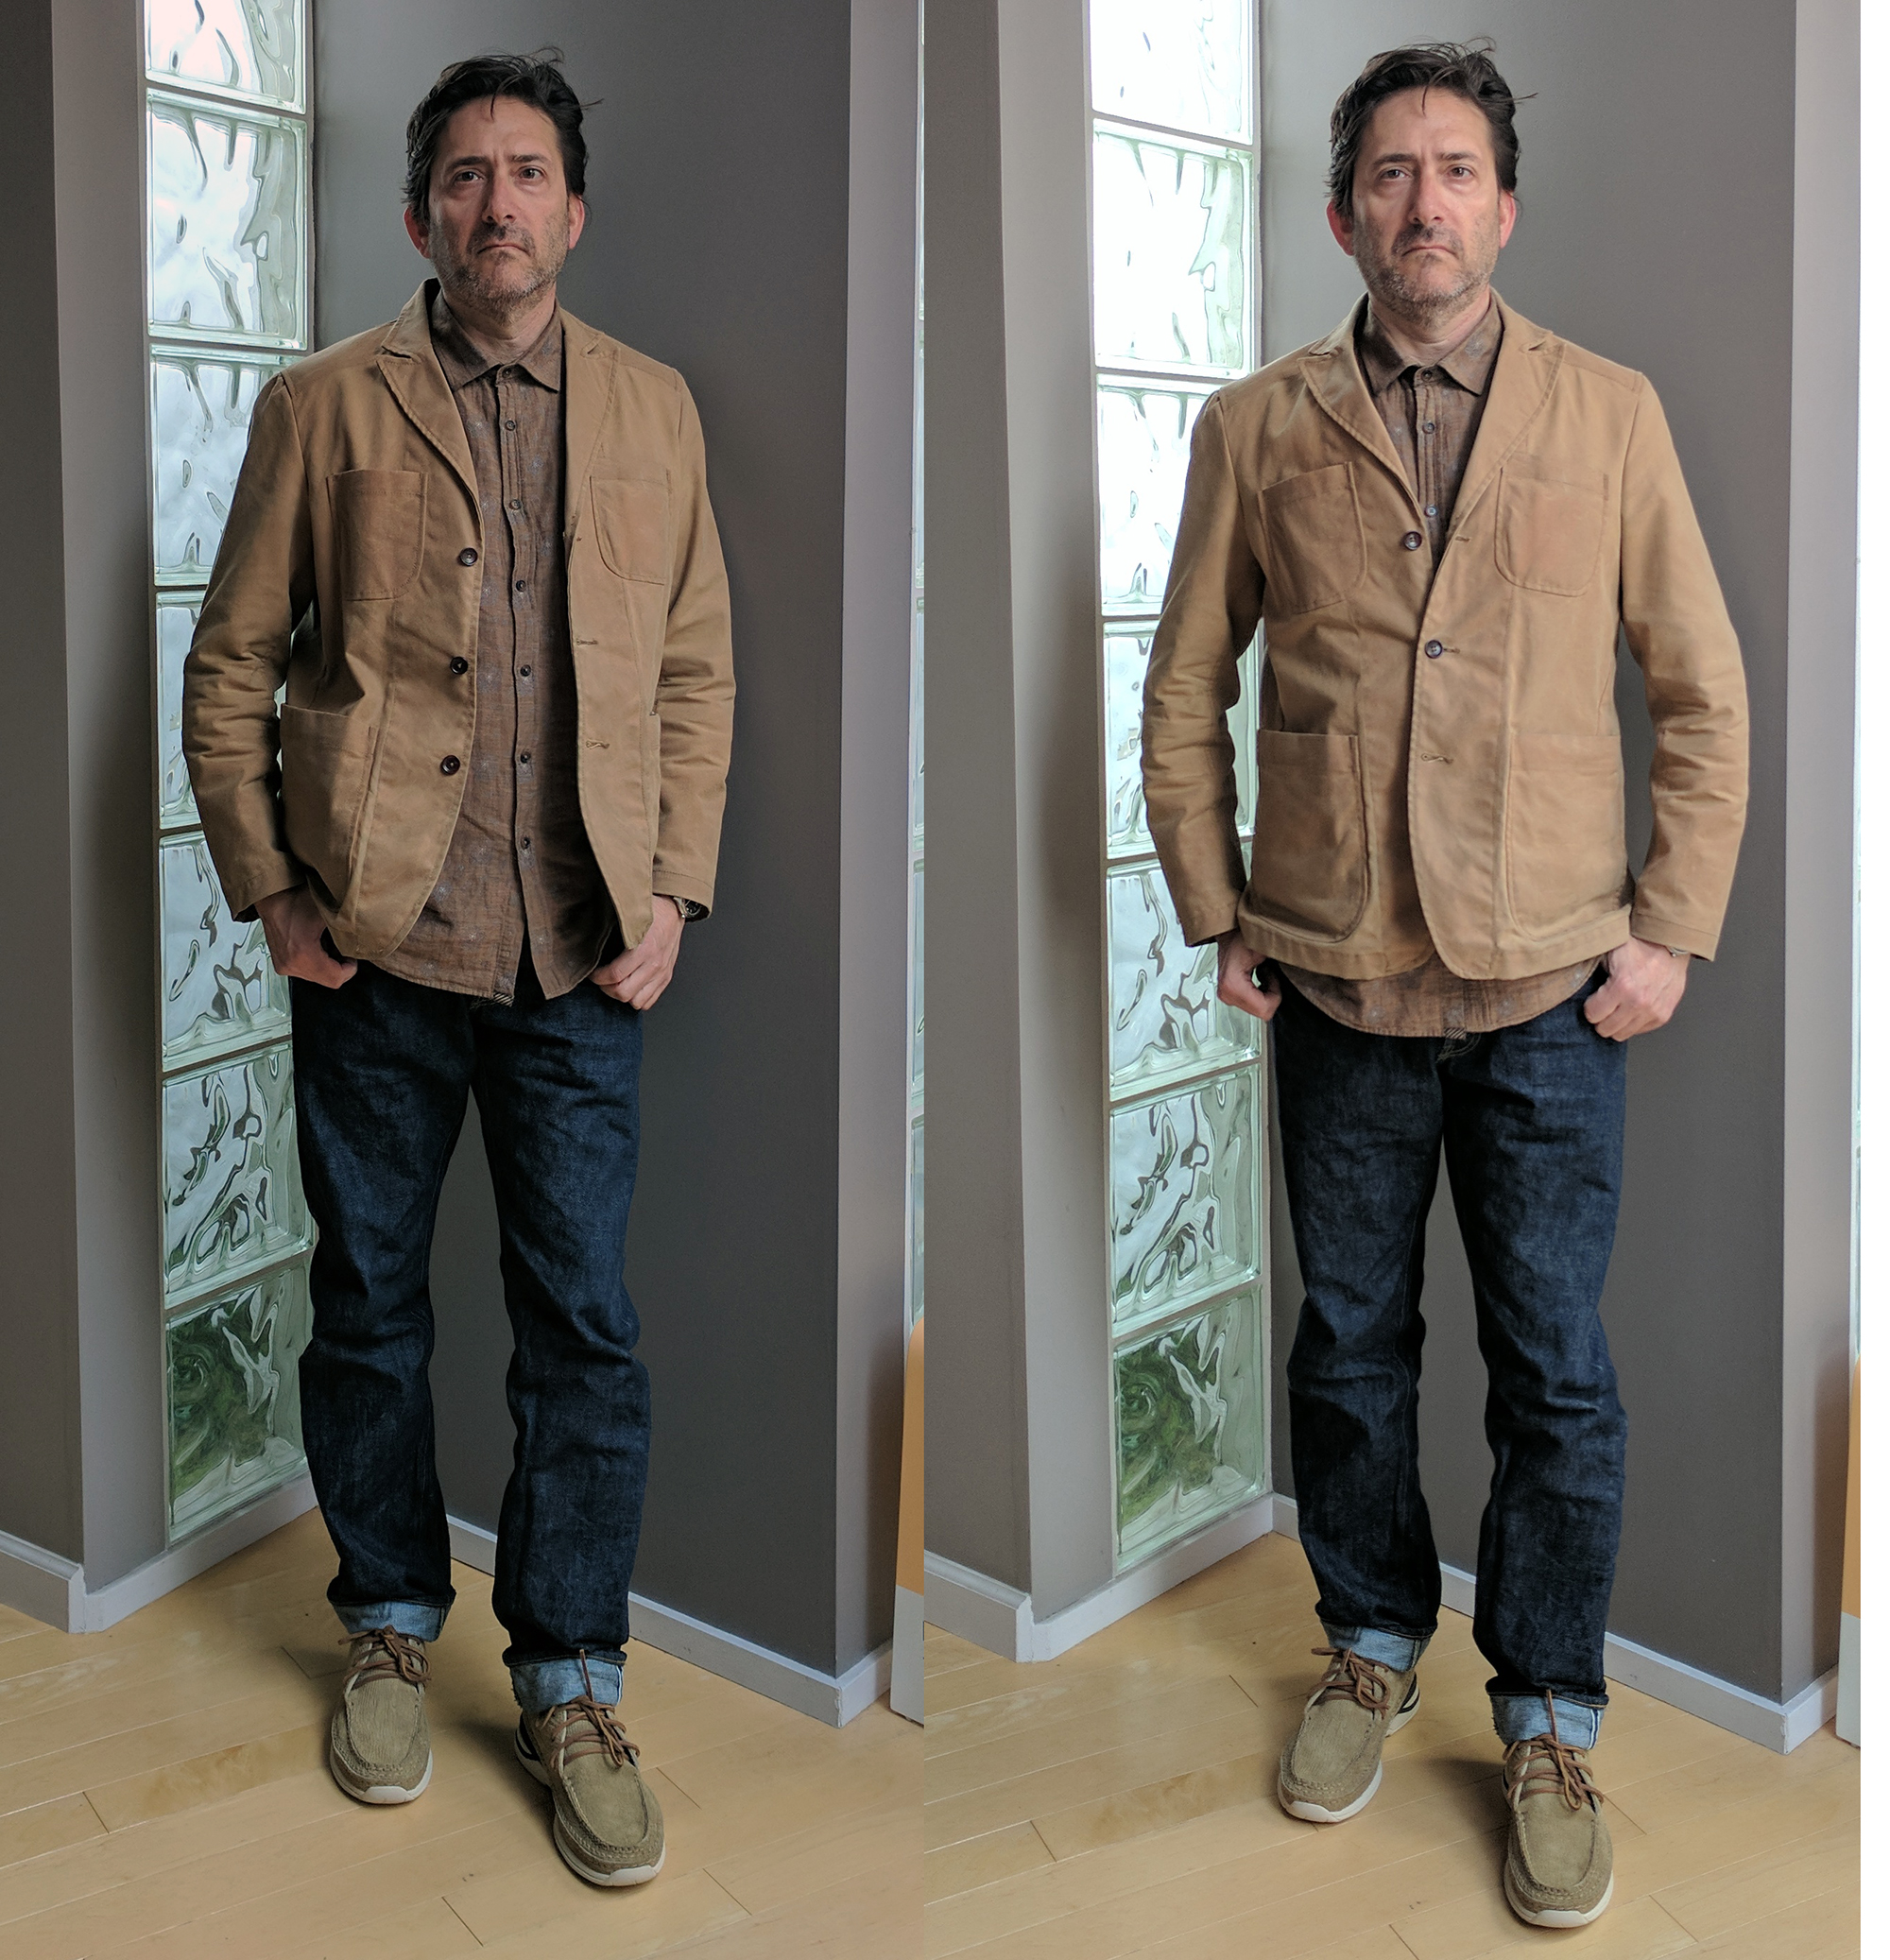 dress well while losing weight